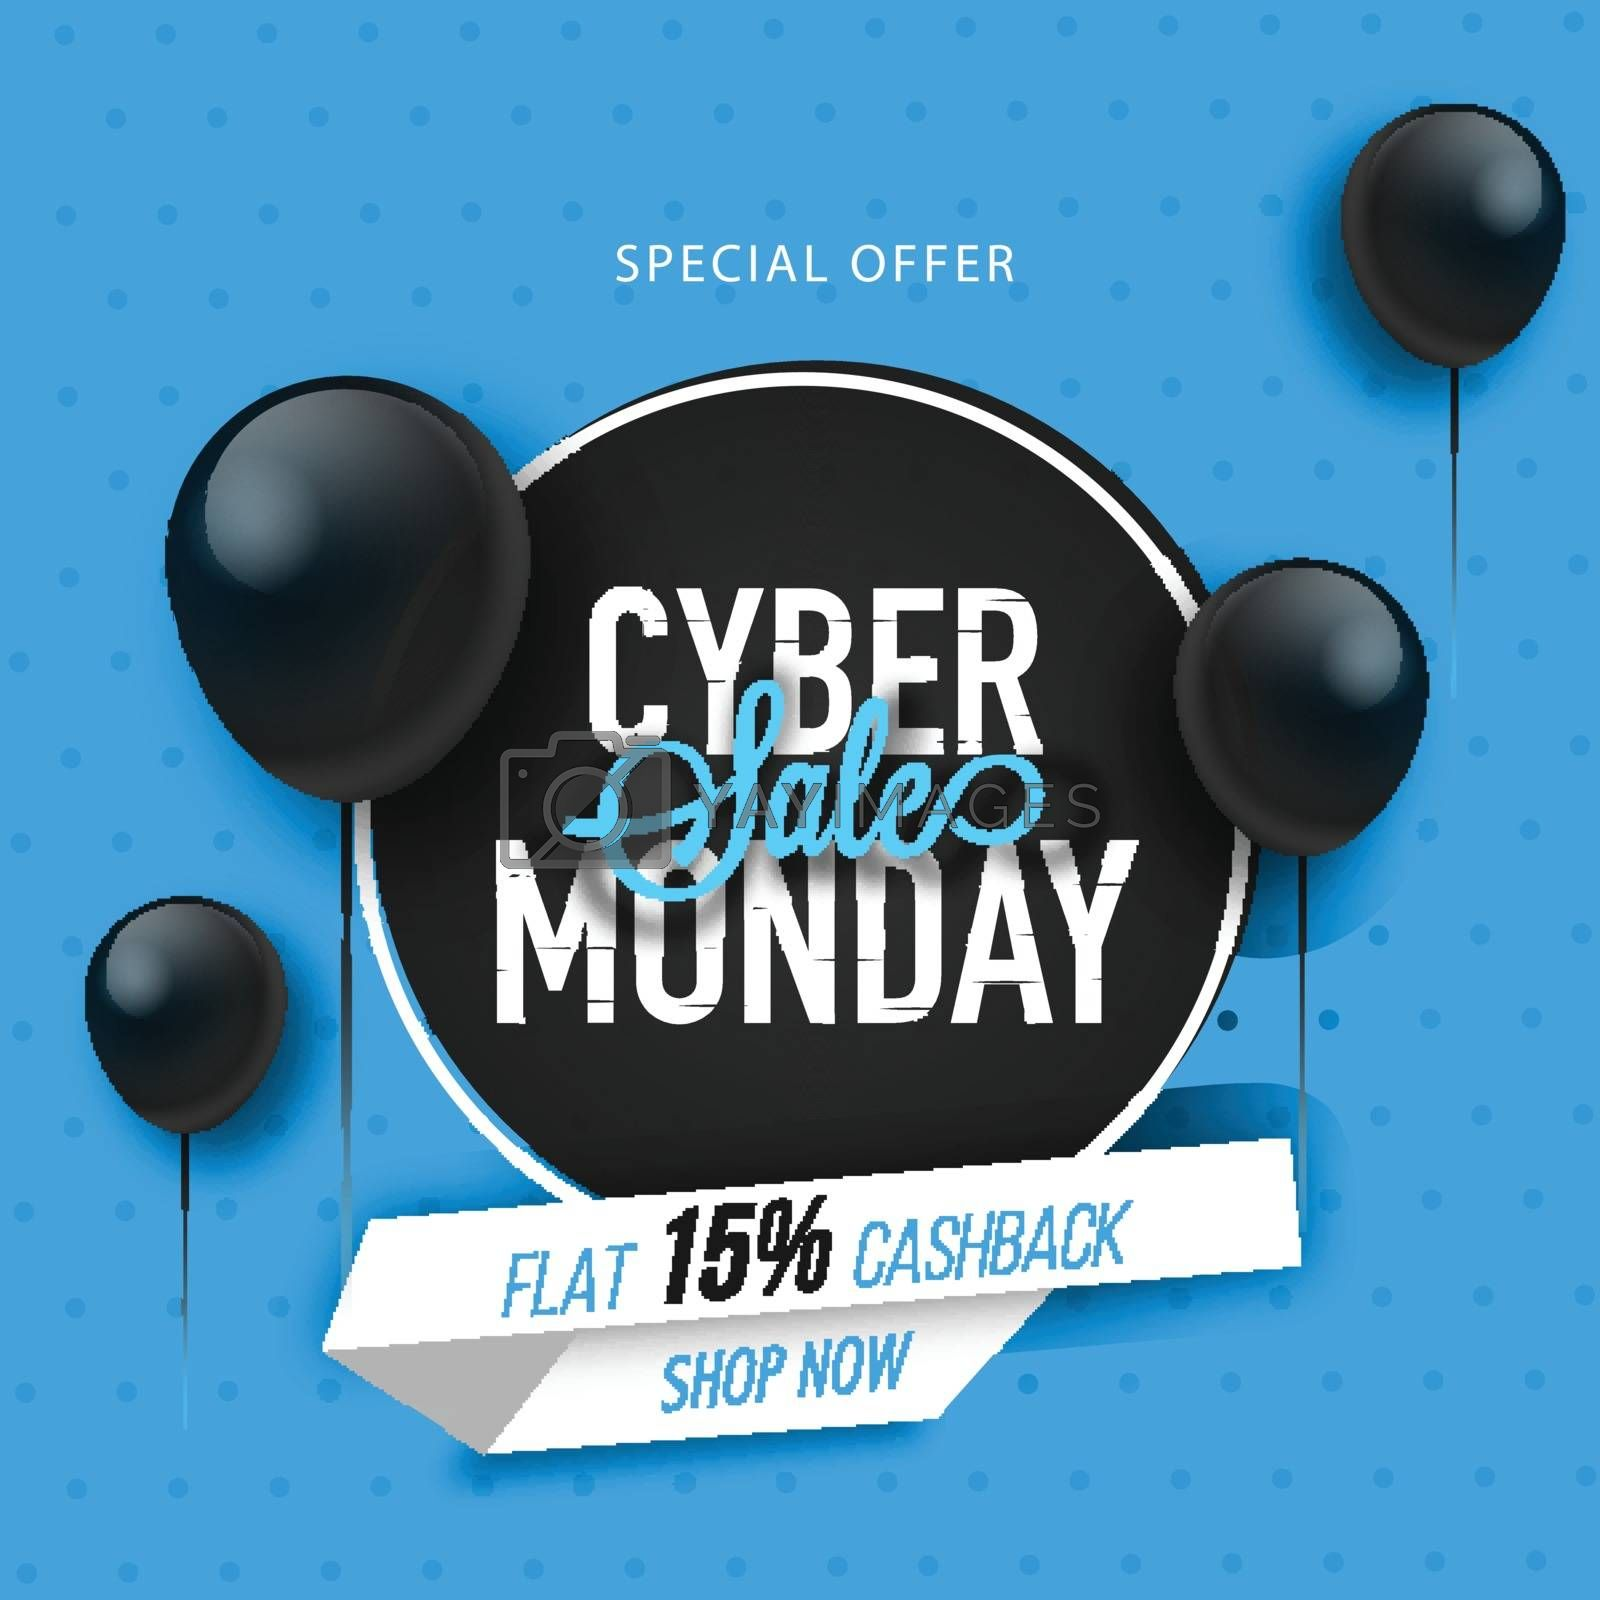 Cyber monday sale background. by aispl